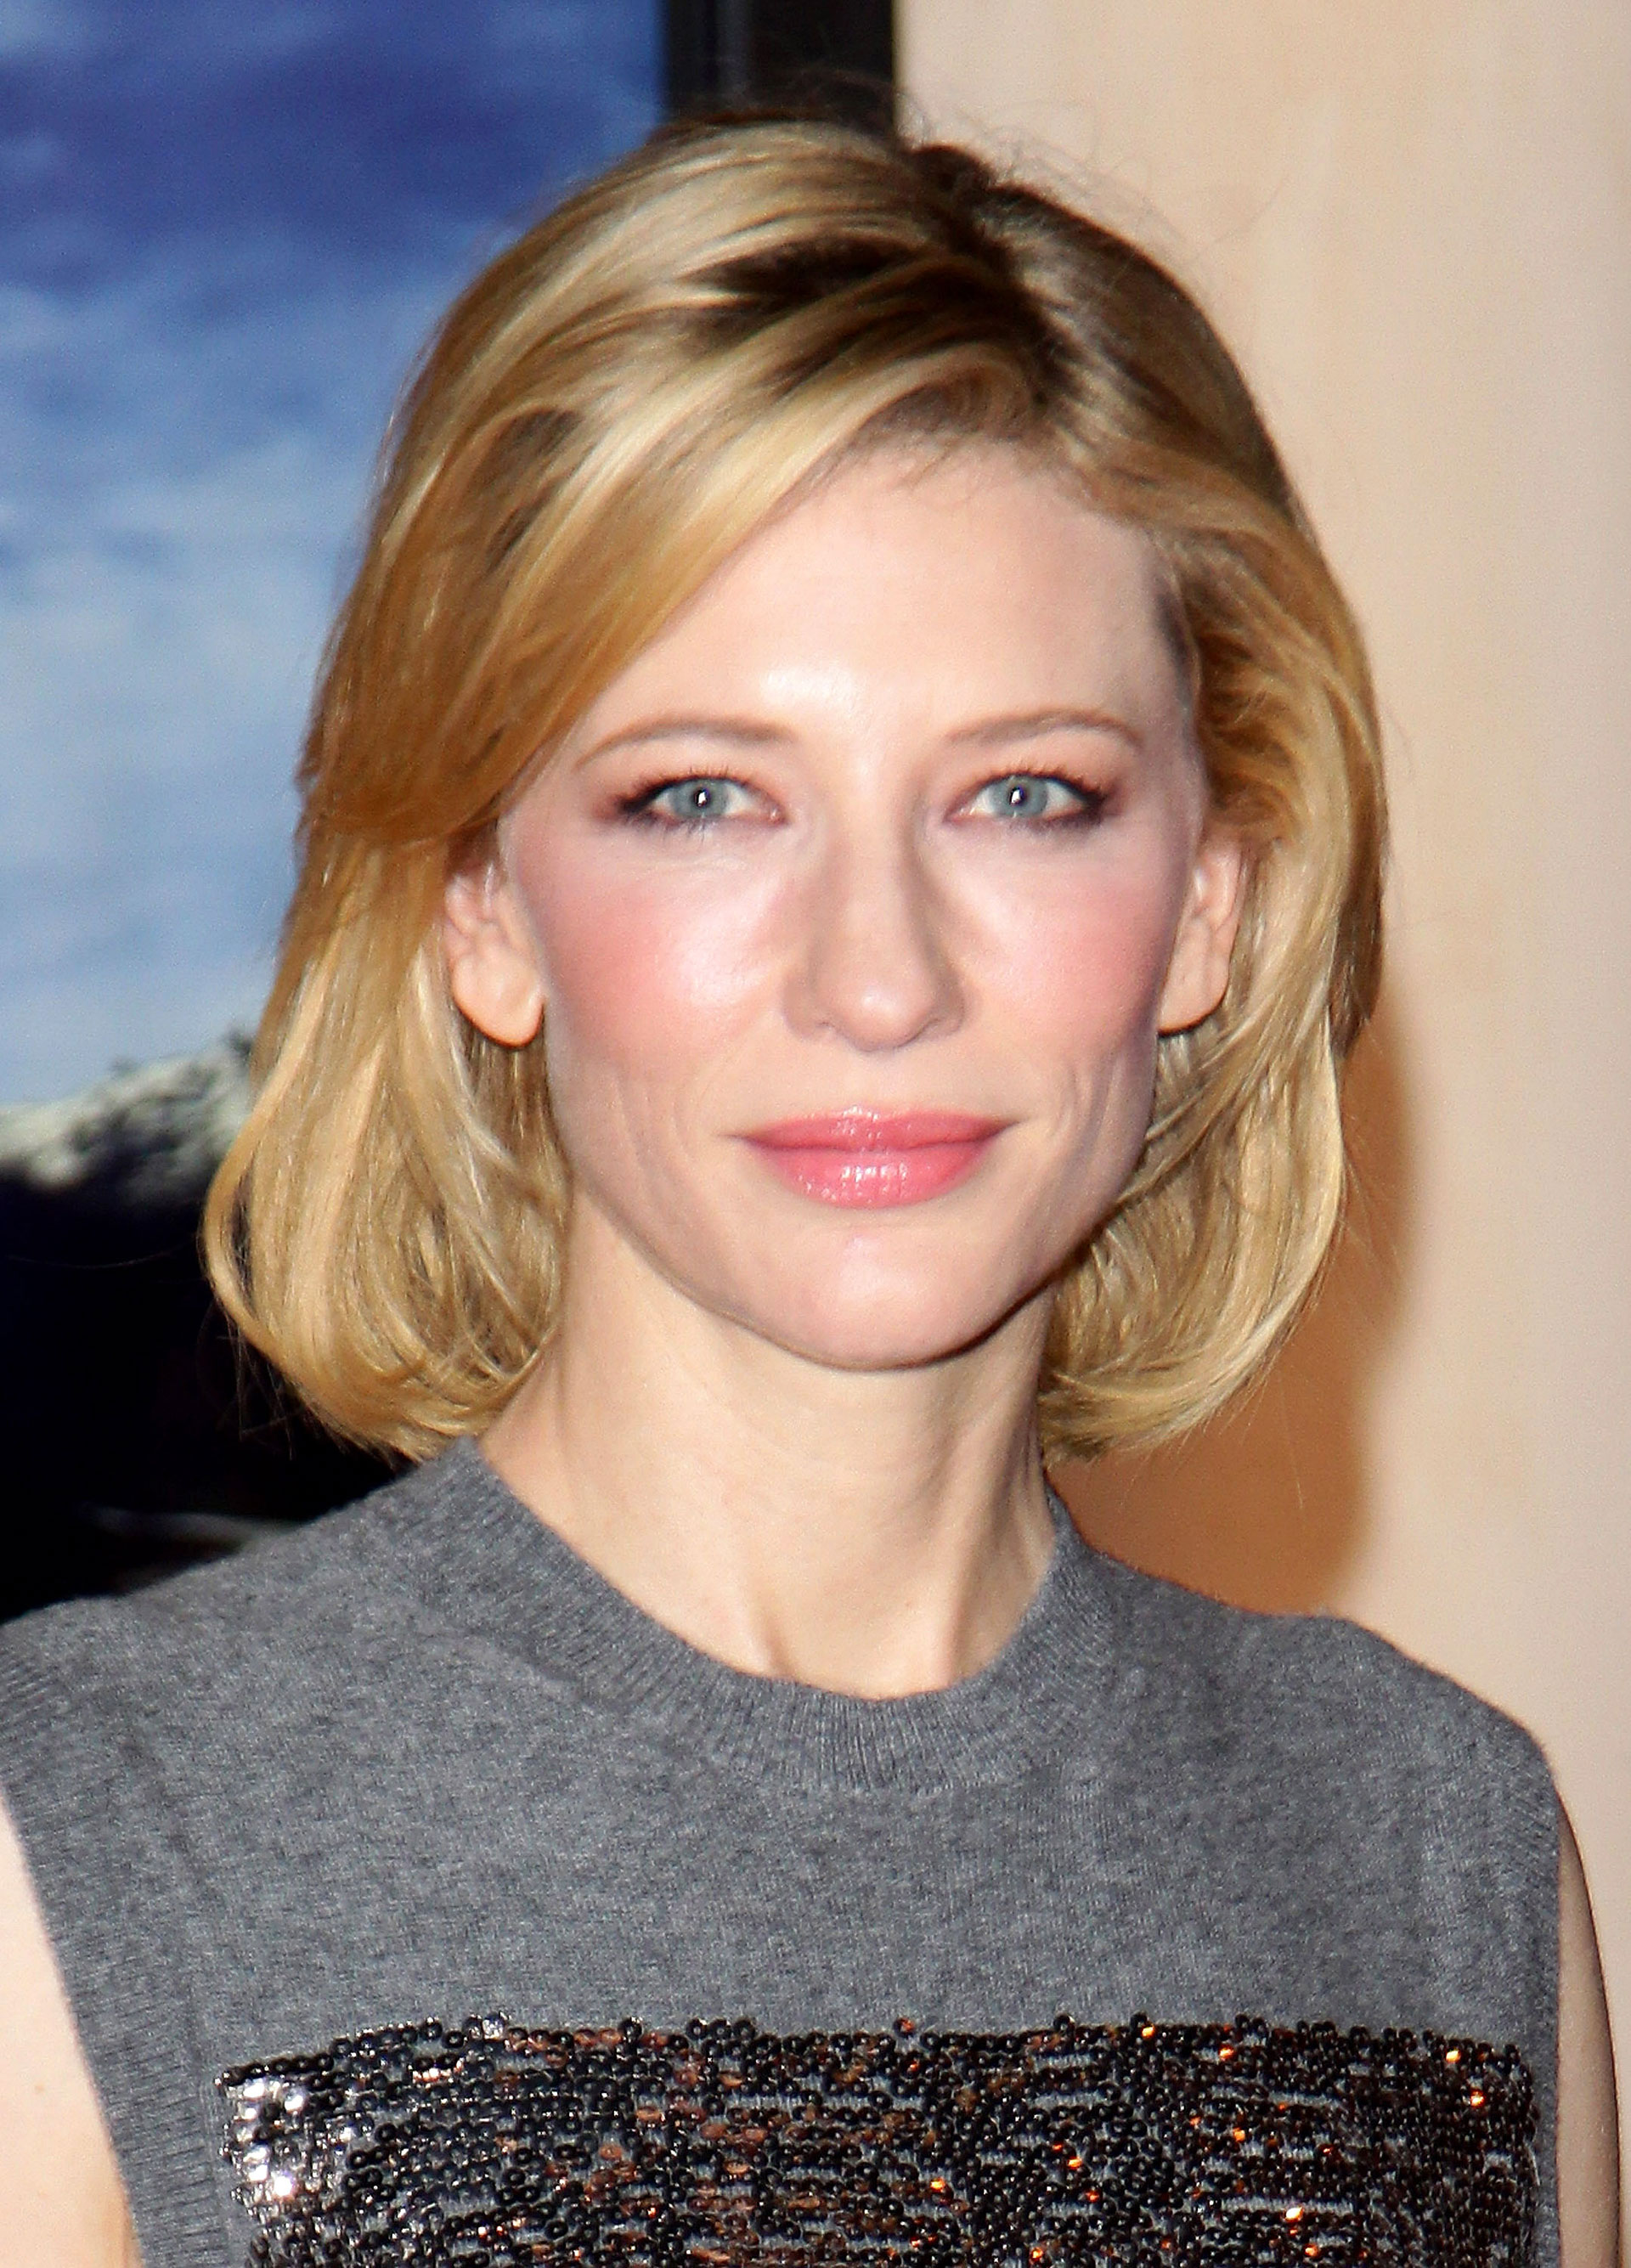 12 best hairstyles for women over 40 - celeb haircut ideas over 40